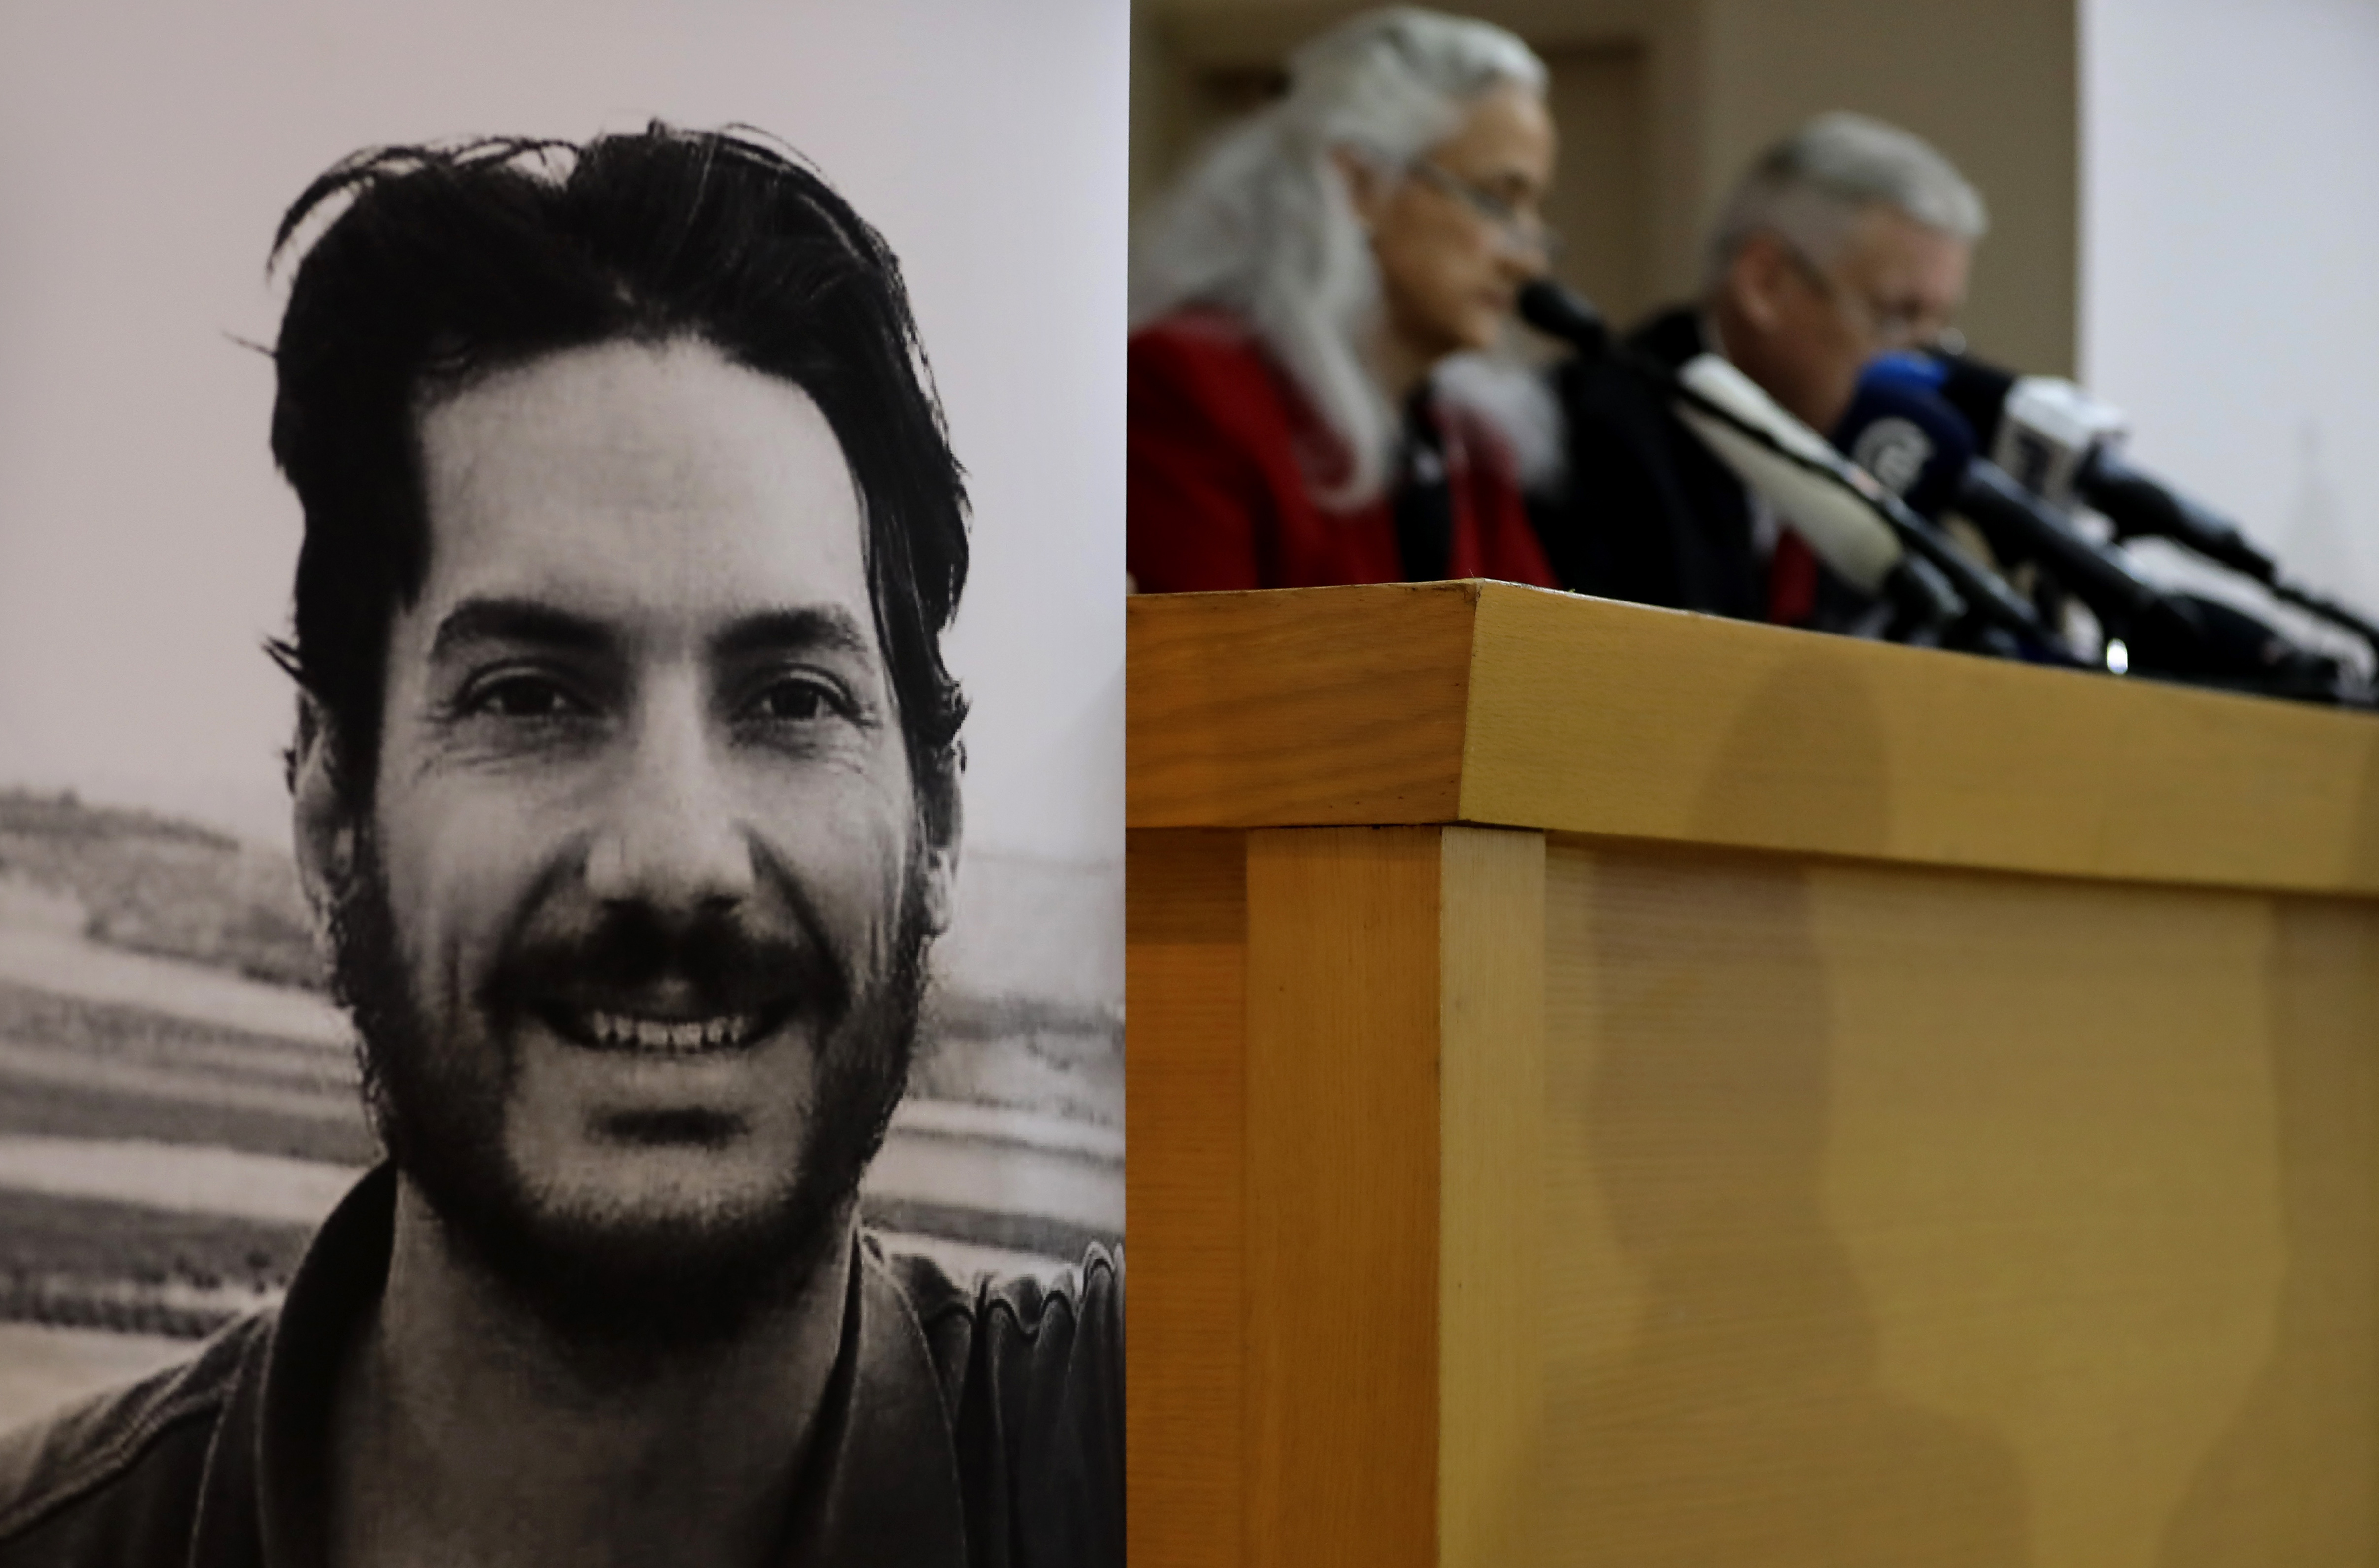 Marc and Debra Tice, the parents of U.S. journalist Austin Tice (portrait L), who was abducted in Syria more than six years ago, give a press conference in the Lebanese capital of Beirut on Dec. 4, 2018.